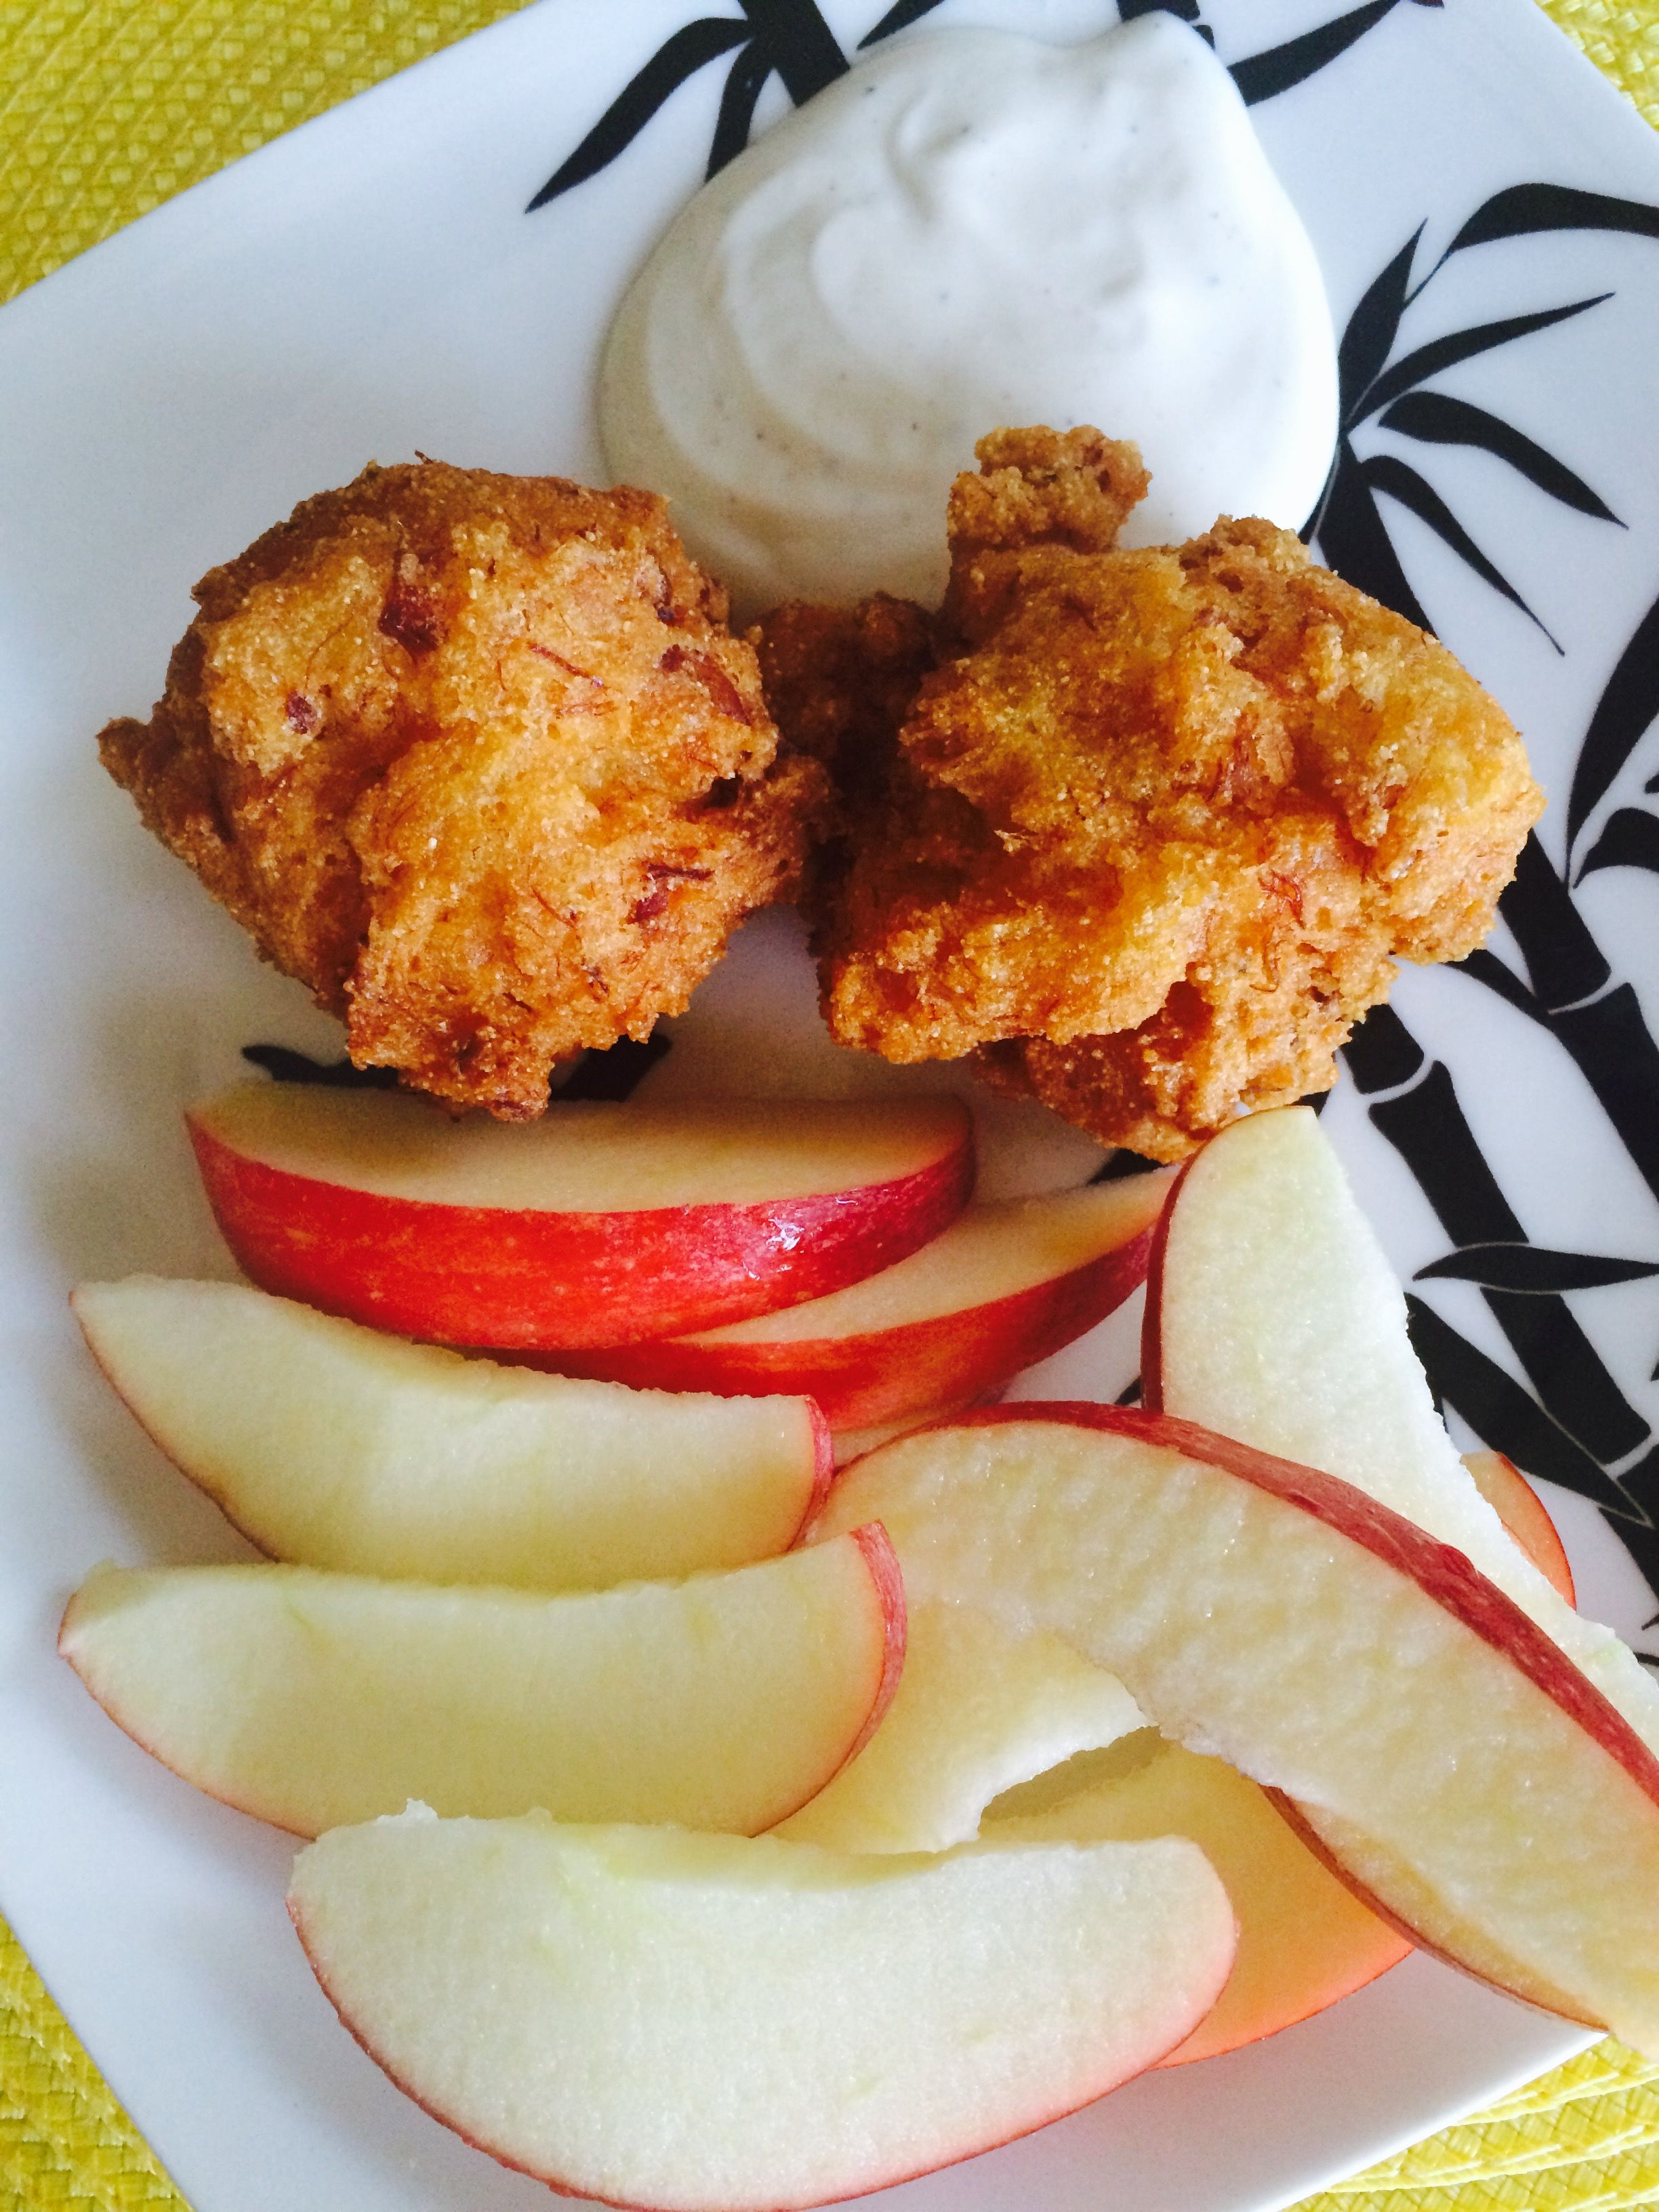 Saltfish hush puppies with ranch